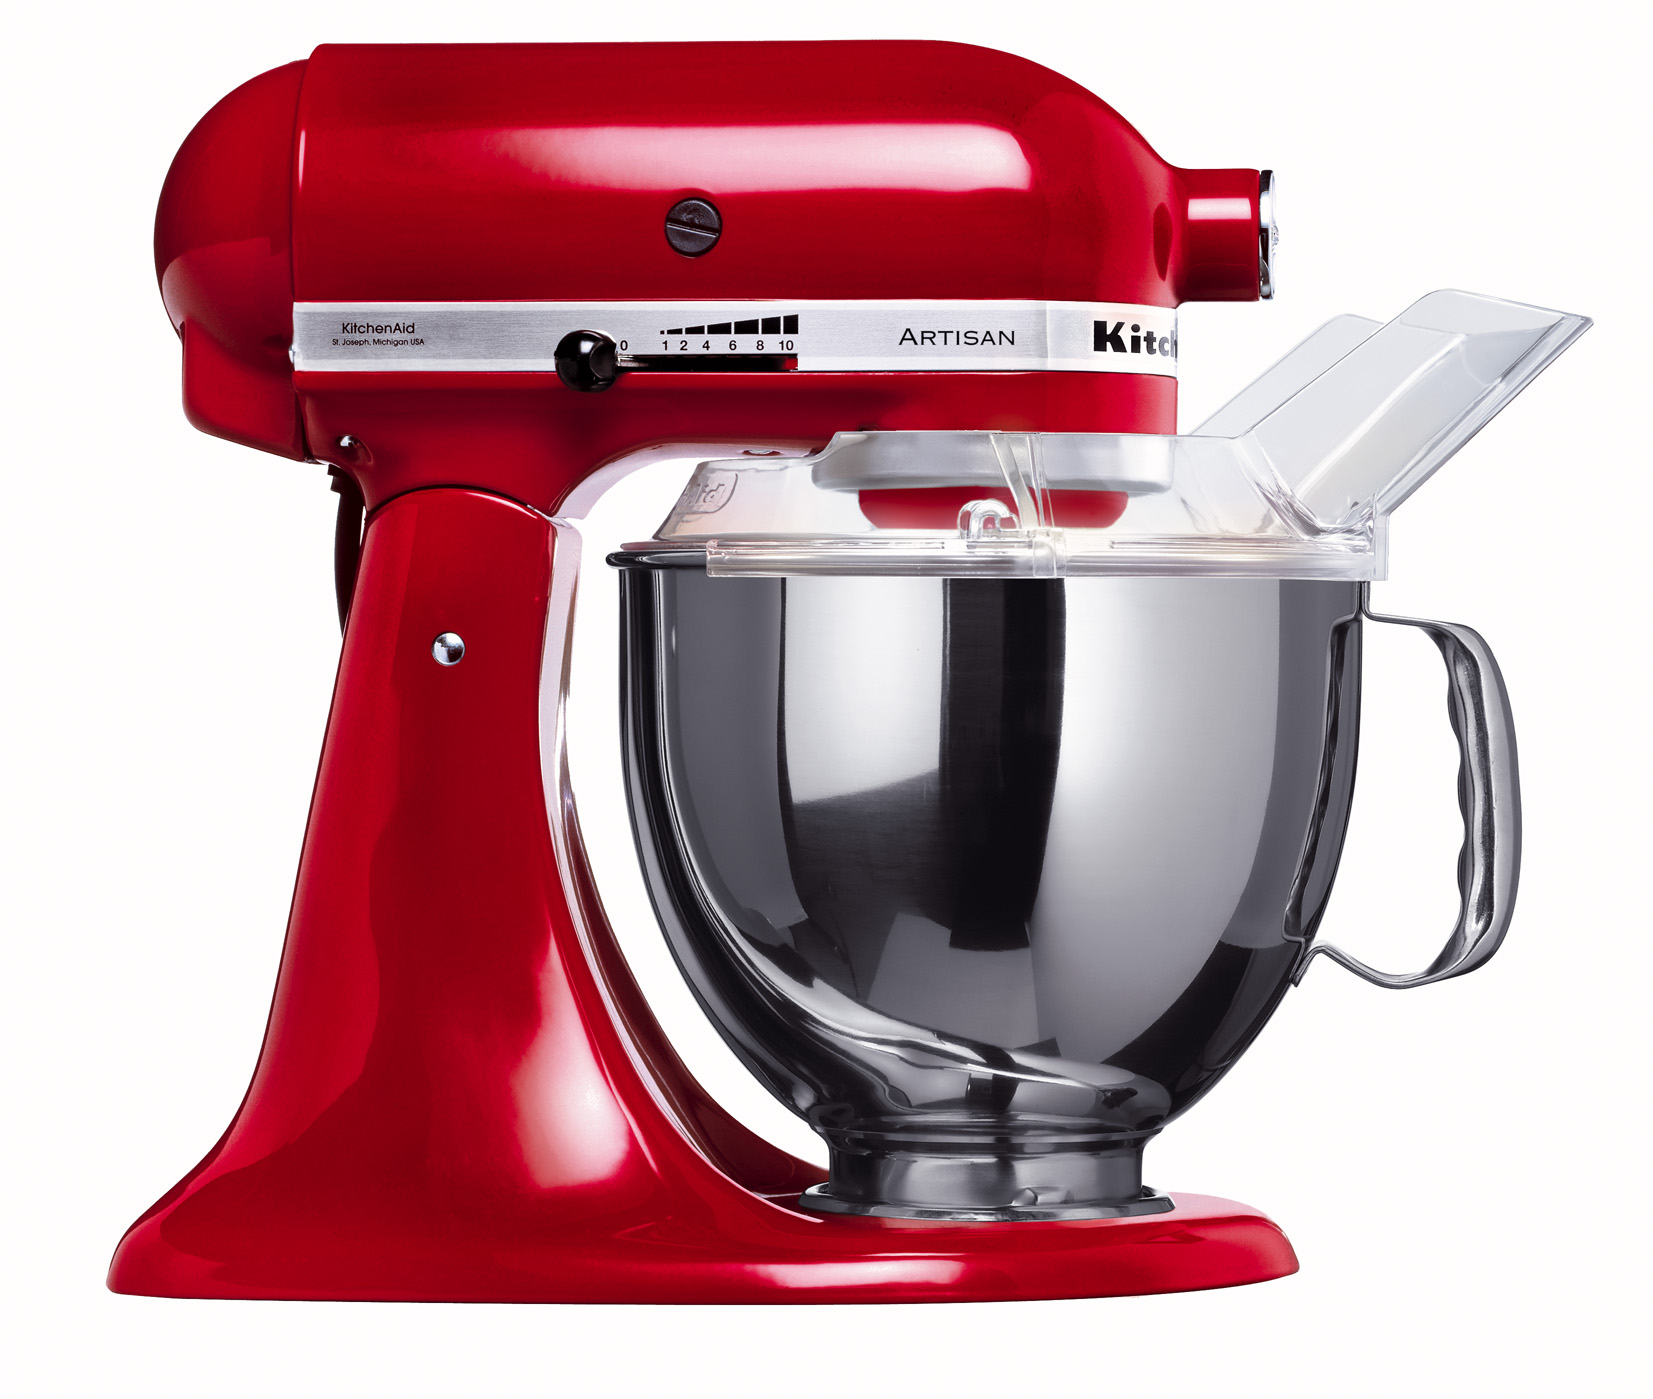 Kitchenaid mixer classic plus photo - 1